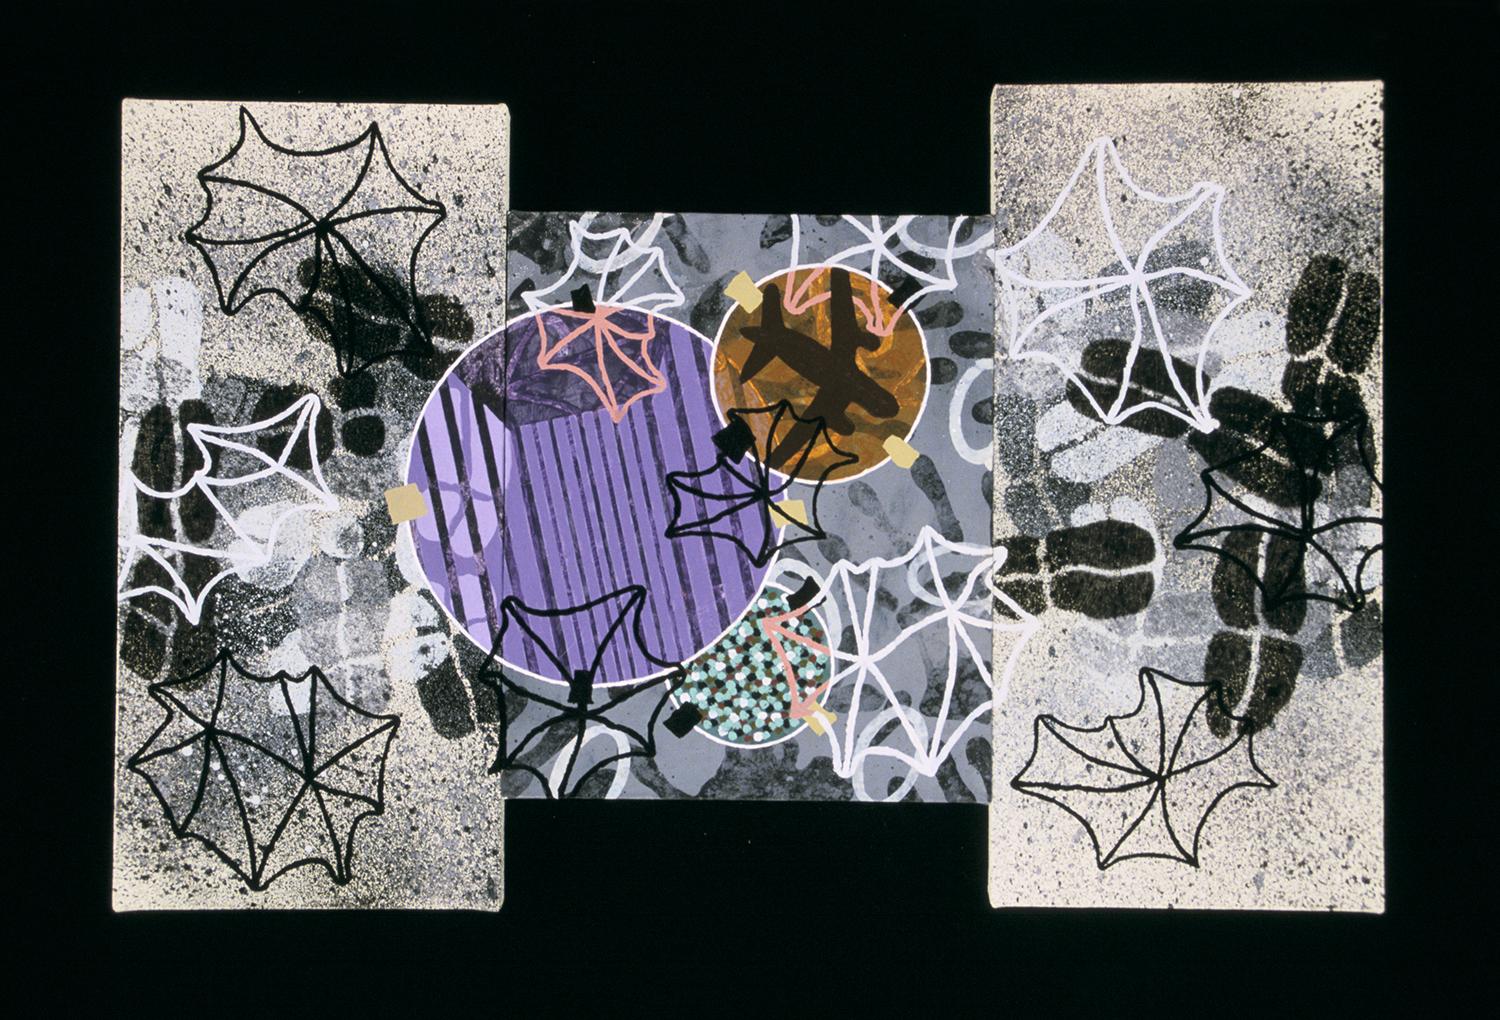 What I Saw Triptych 11  , 2001, oil and wax on canvas, 14 x 24 in.